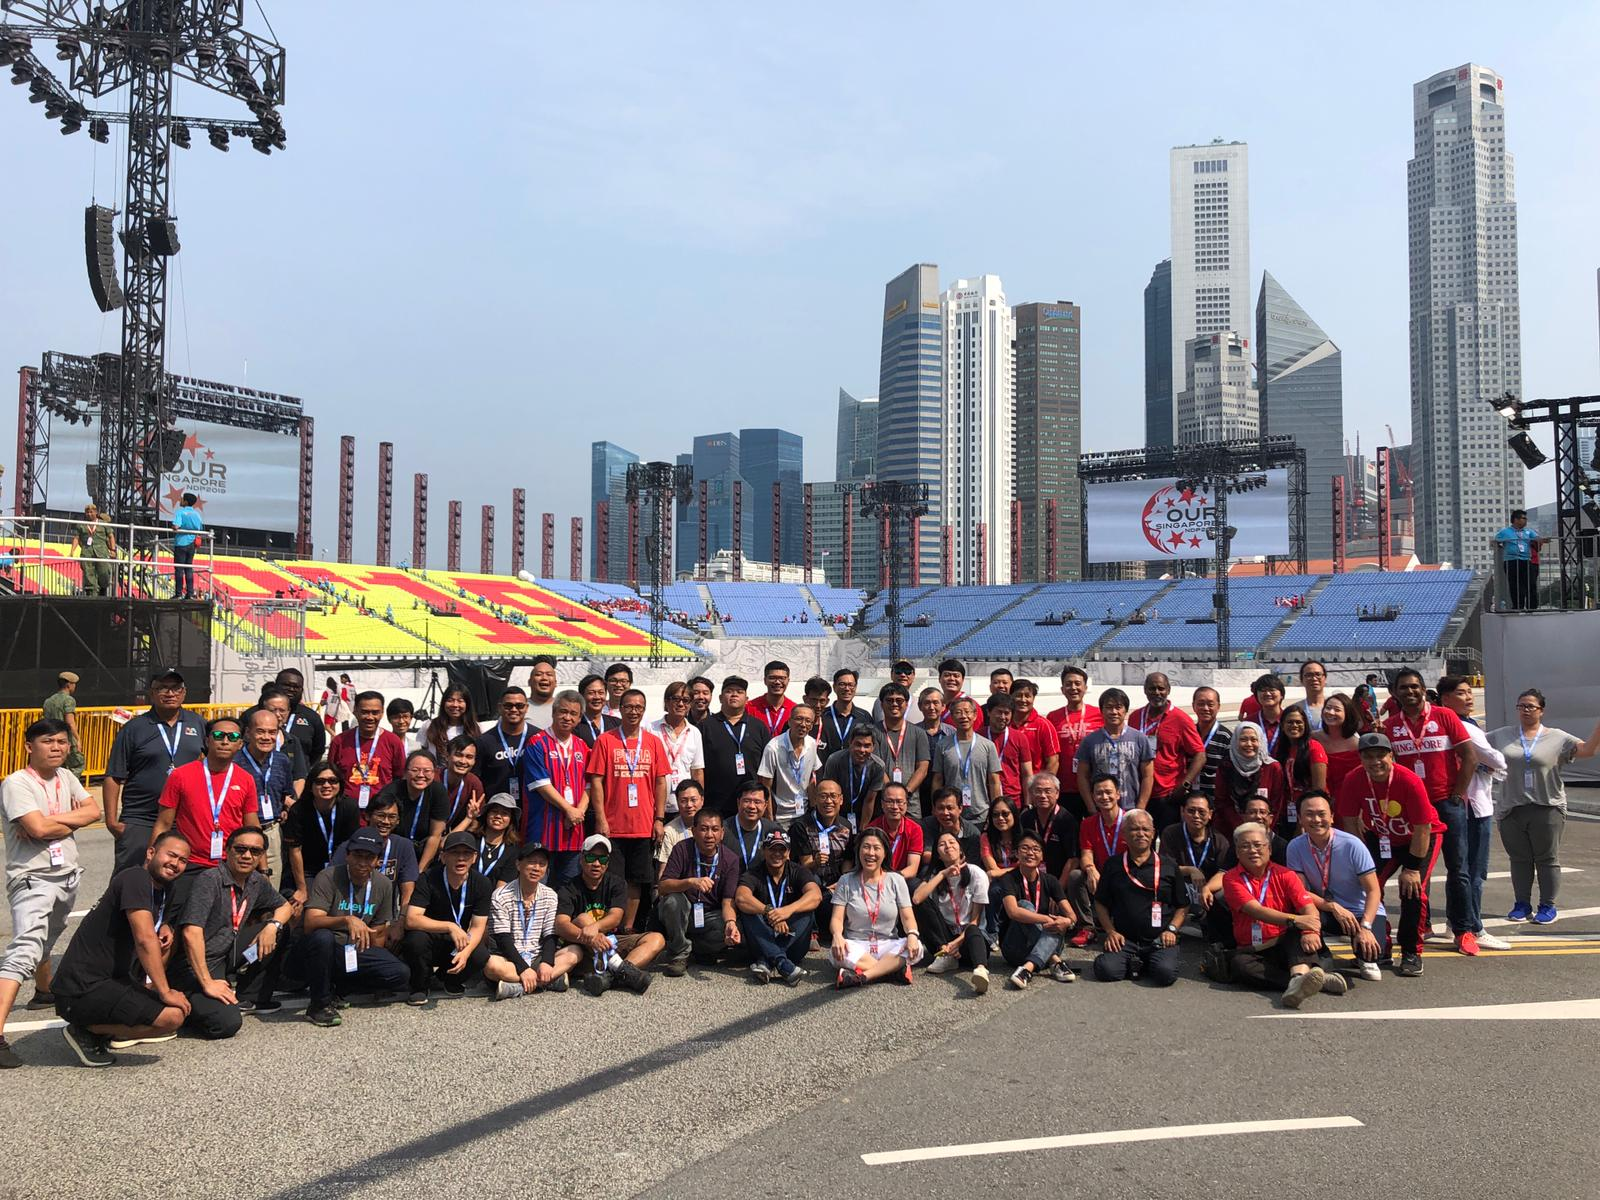 The group shot of the production team and OB crew was taken in the afternoon at the padang.